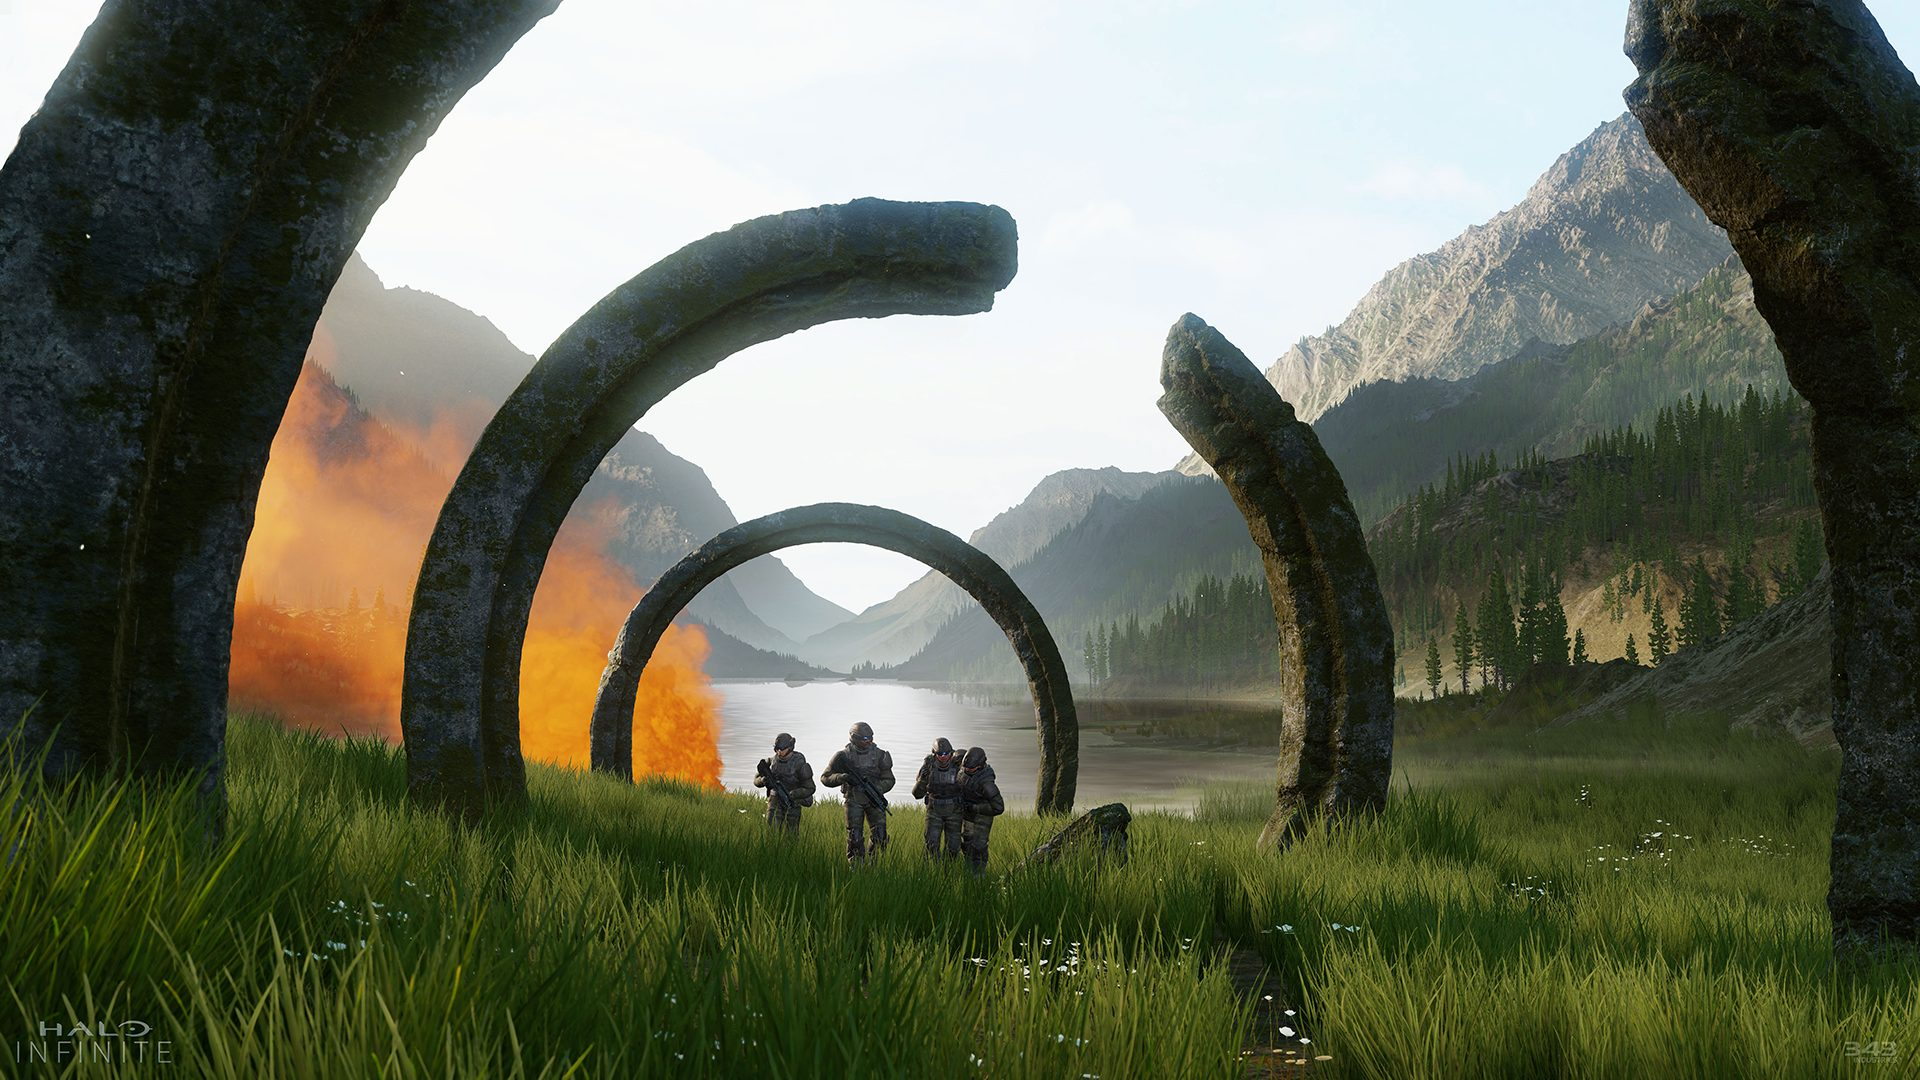 Halo Infinite is one Xbox exclusive that may release in 2019 though no confirmed release date has been announced.